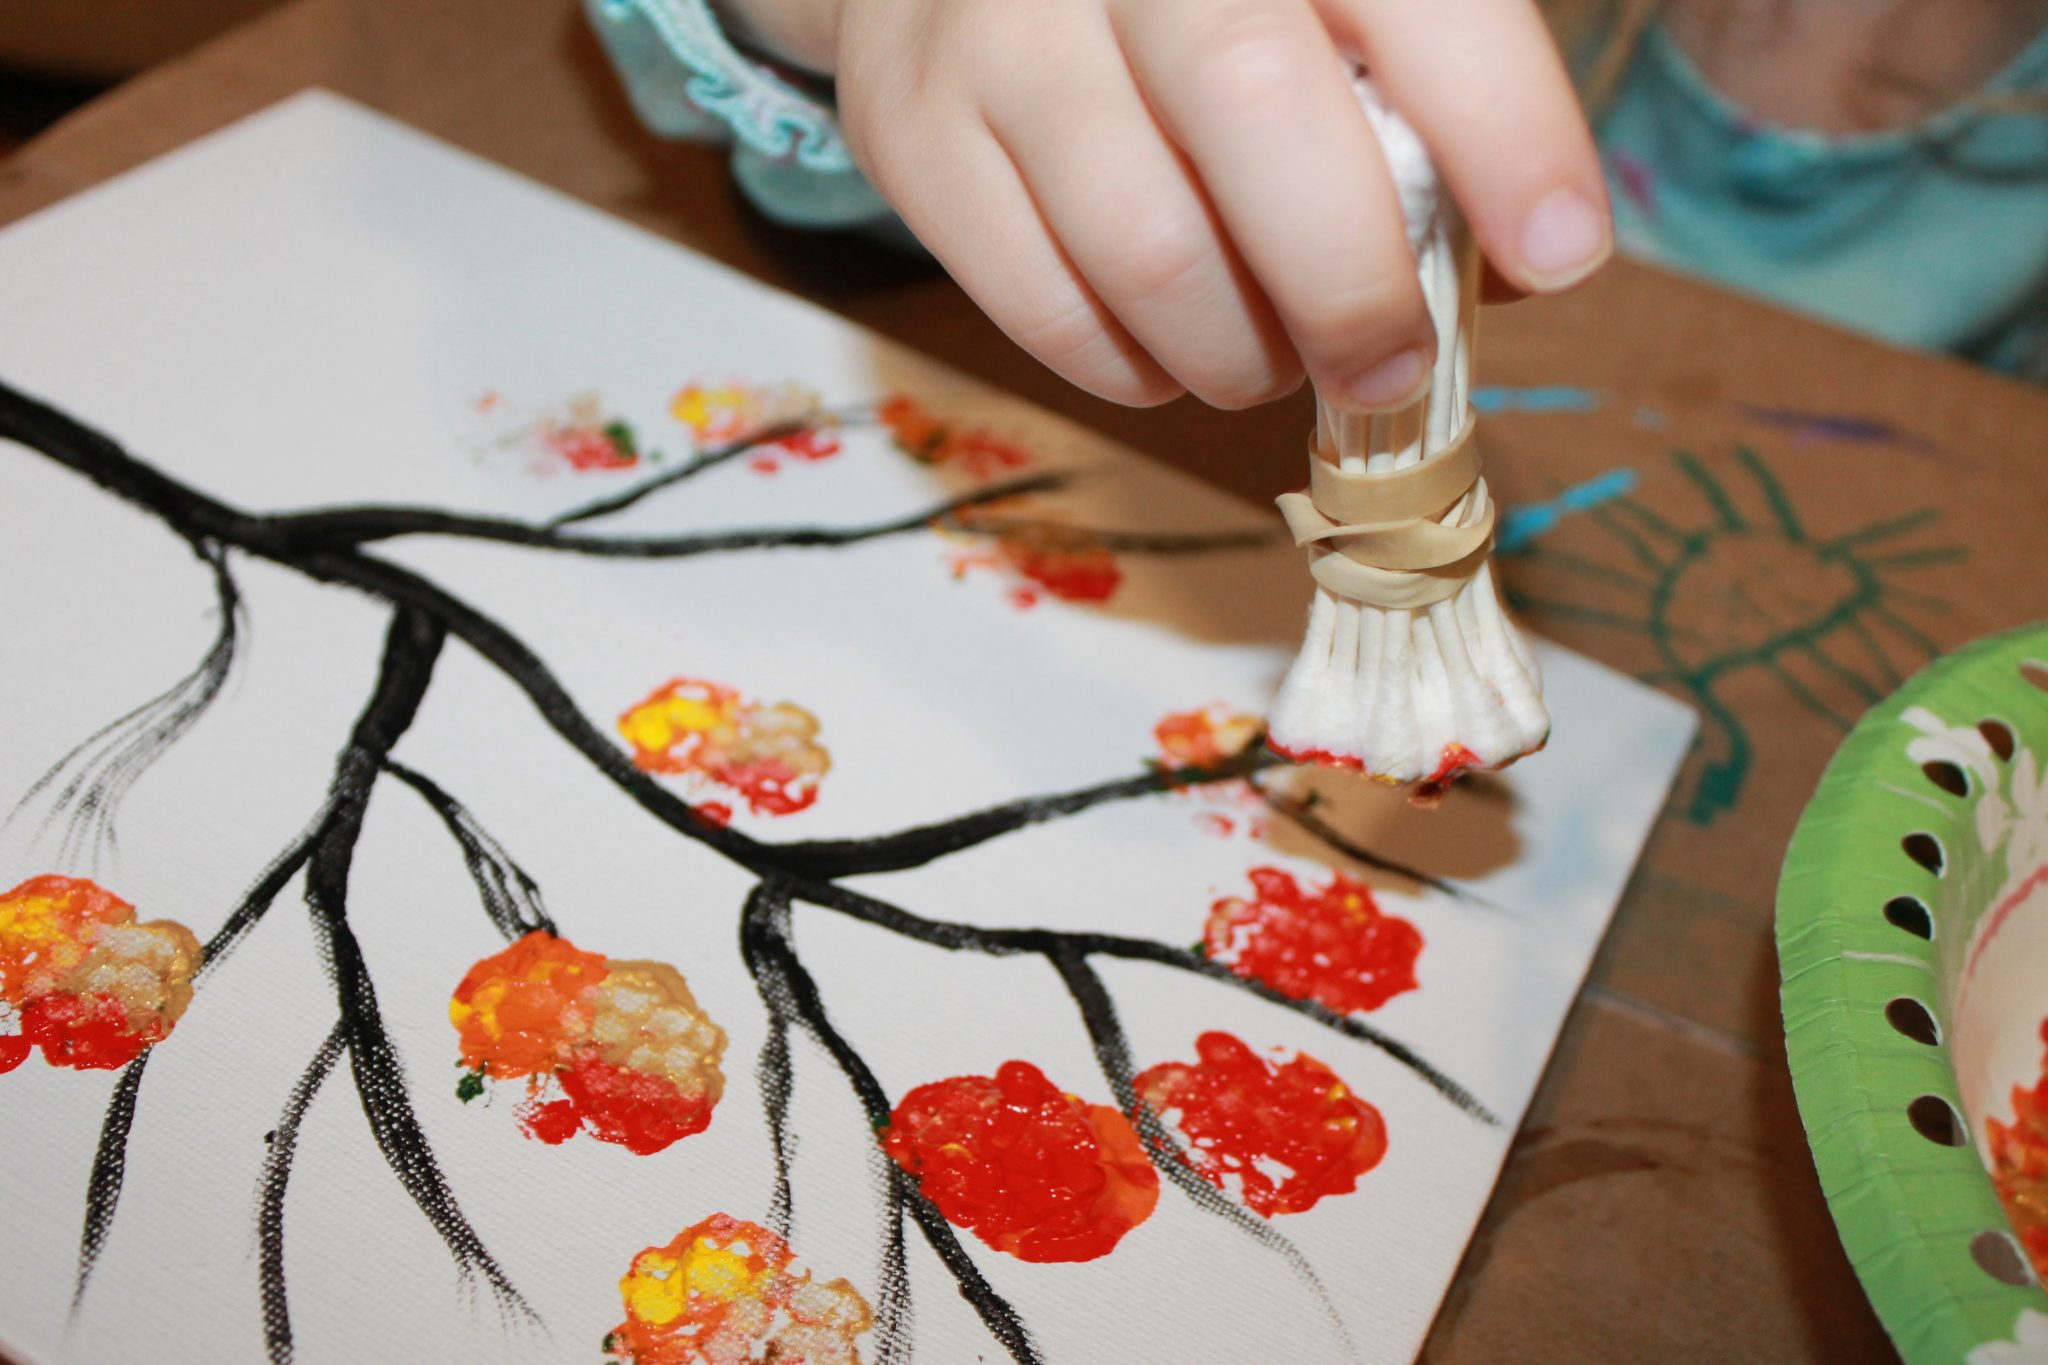 ... fall tree painted with bundled q-tips - autumn arts & craft projects  for kids